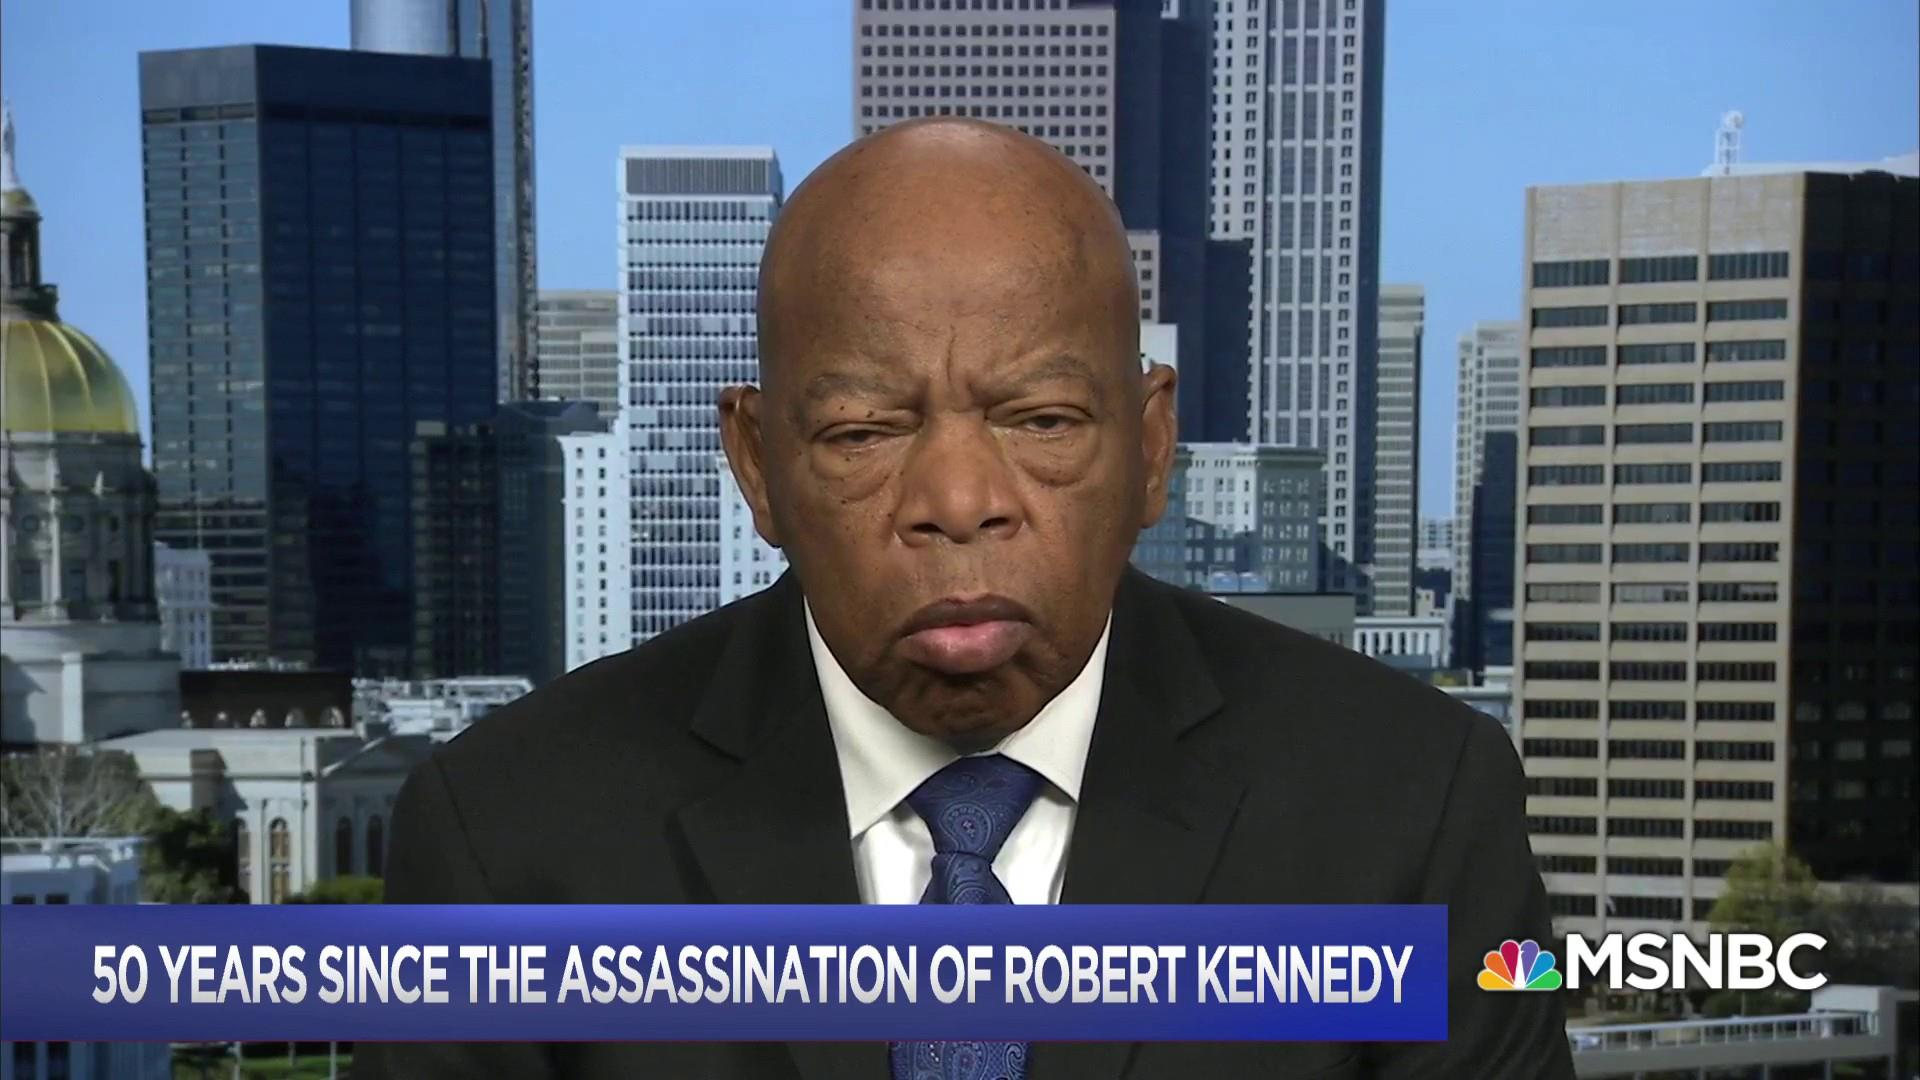 John Lewis: Bobby Kennedy inspired the best in all of us